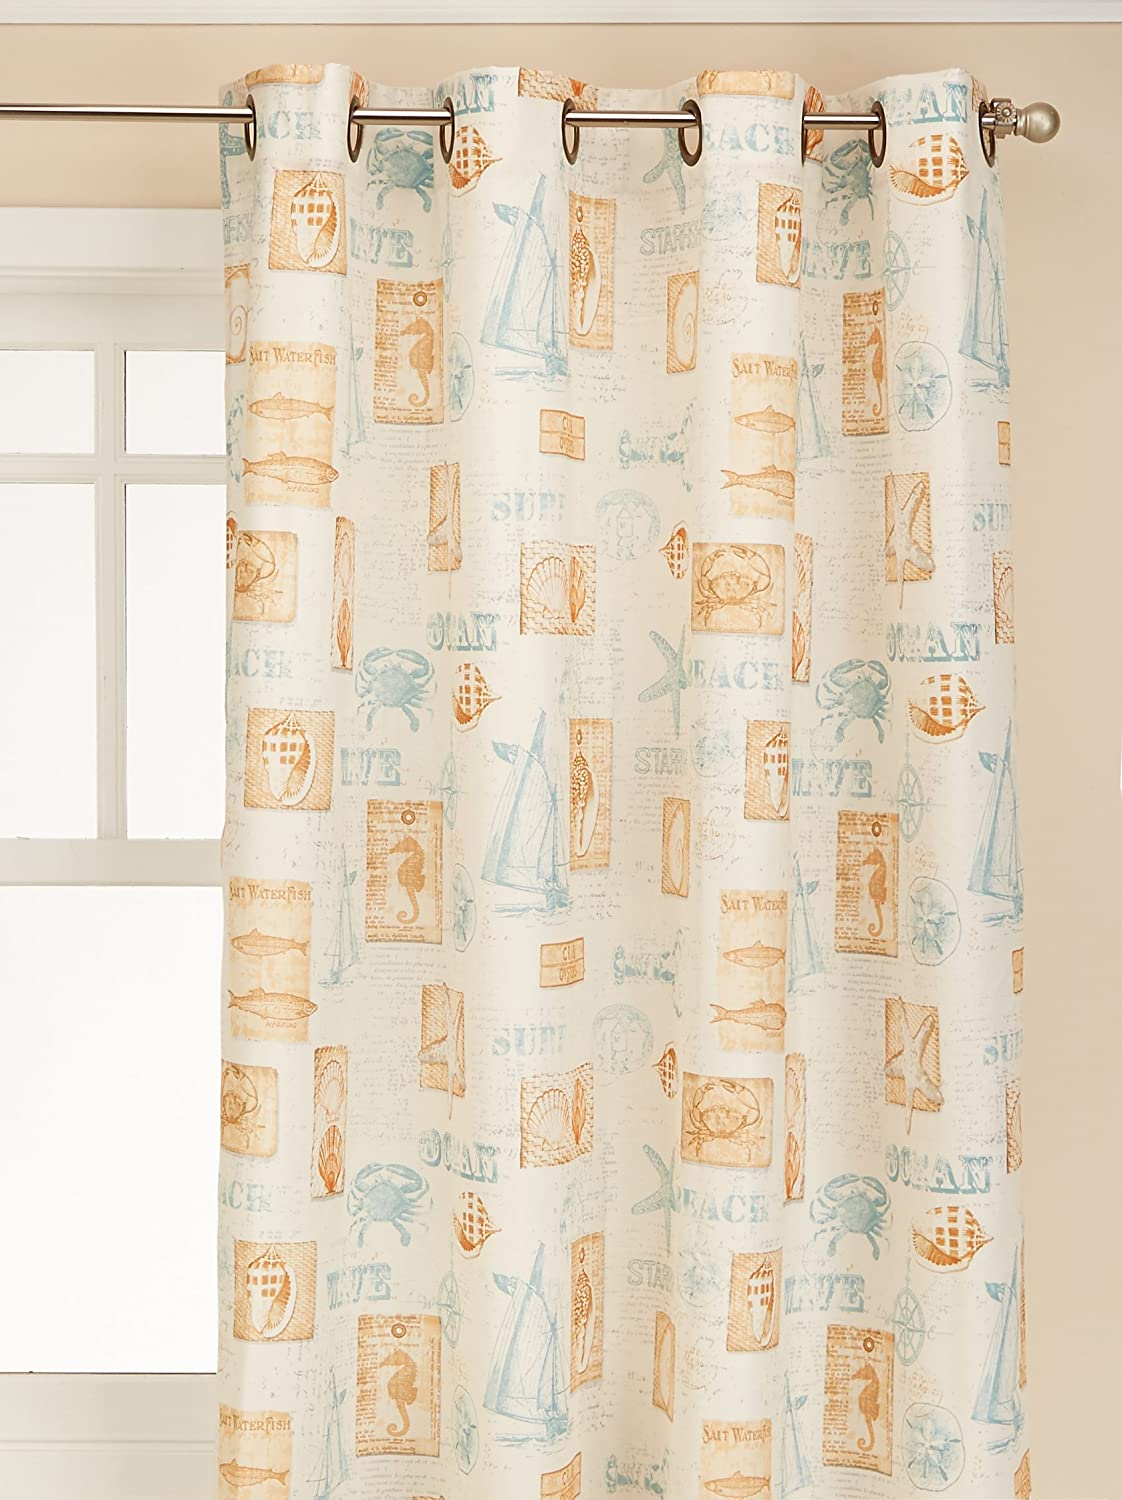 LORRAINE HOME FASHIONS by The Sea Valance, 60 by 12-Inch 00113-V-000003